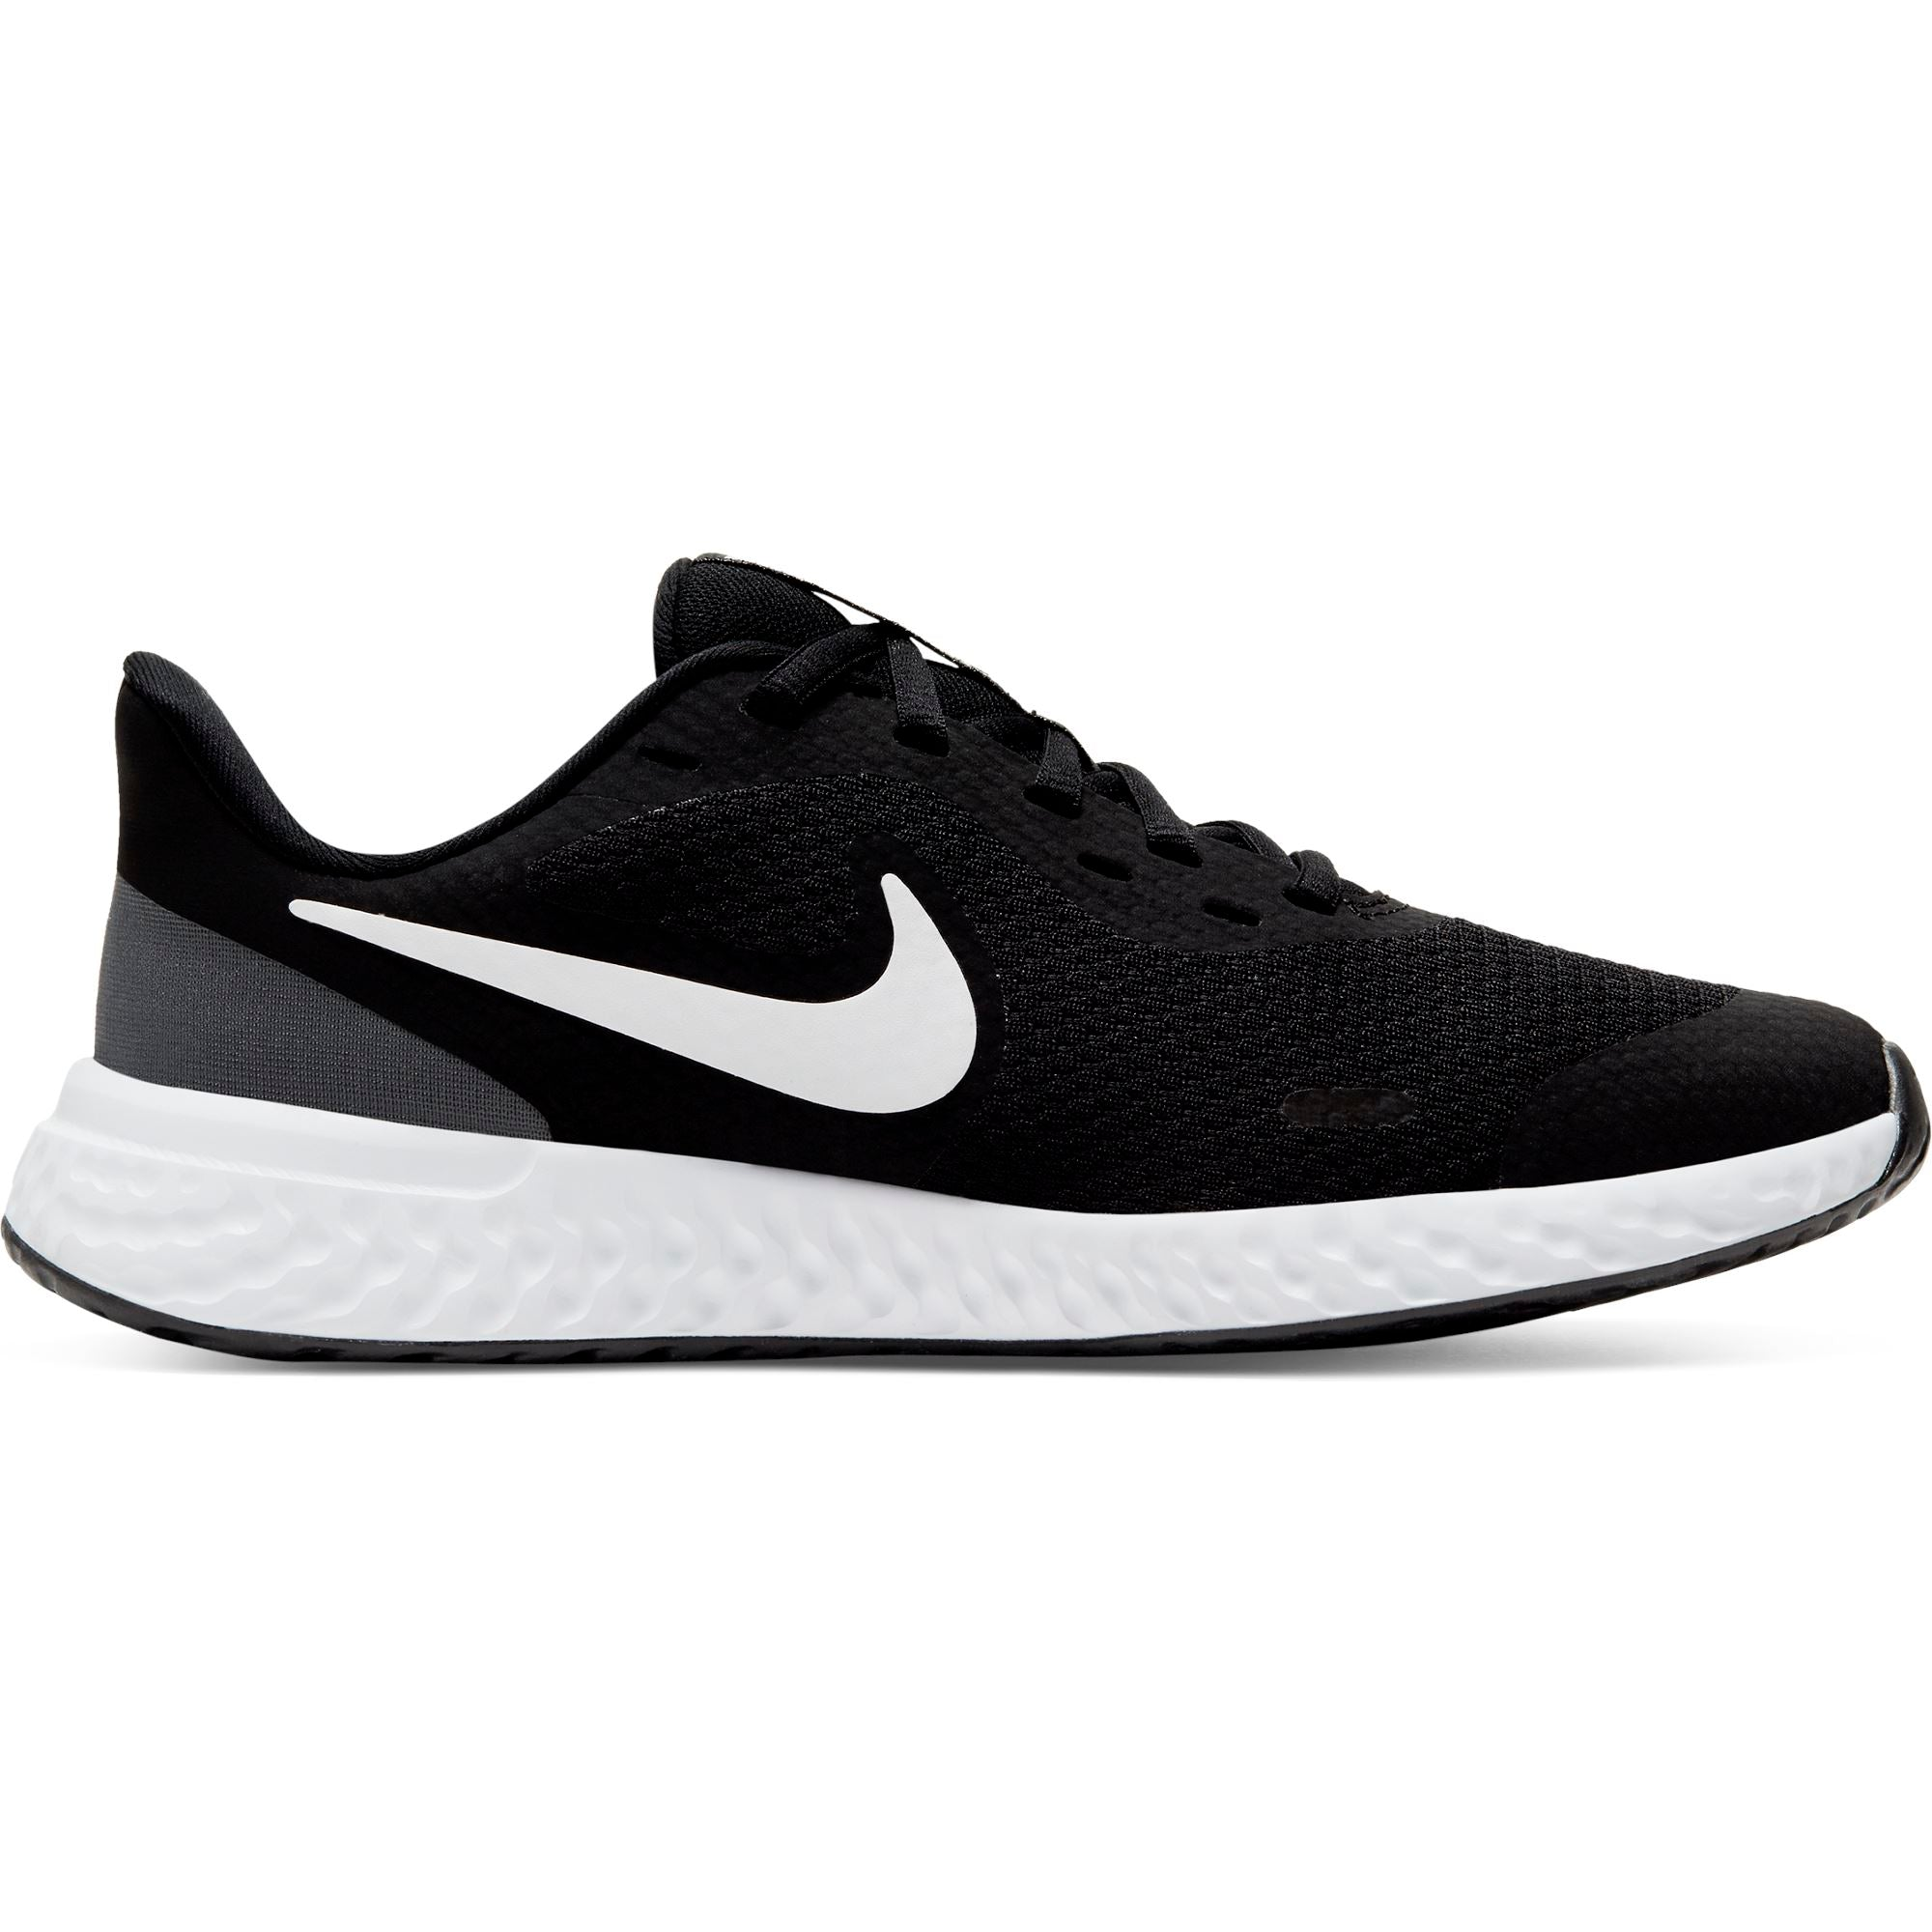 Nike Boys Revolution 5 - Black/White-Anthracite SP-Footwear-Kids Nike